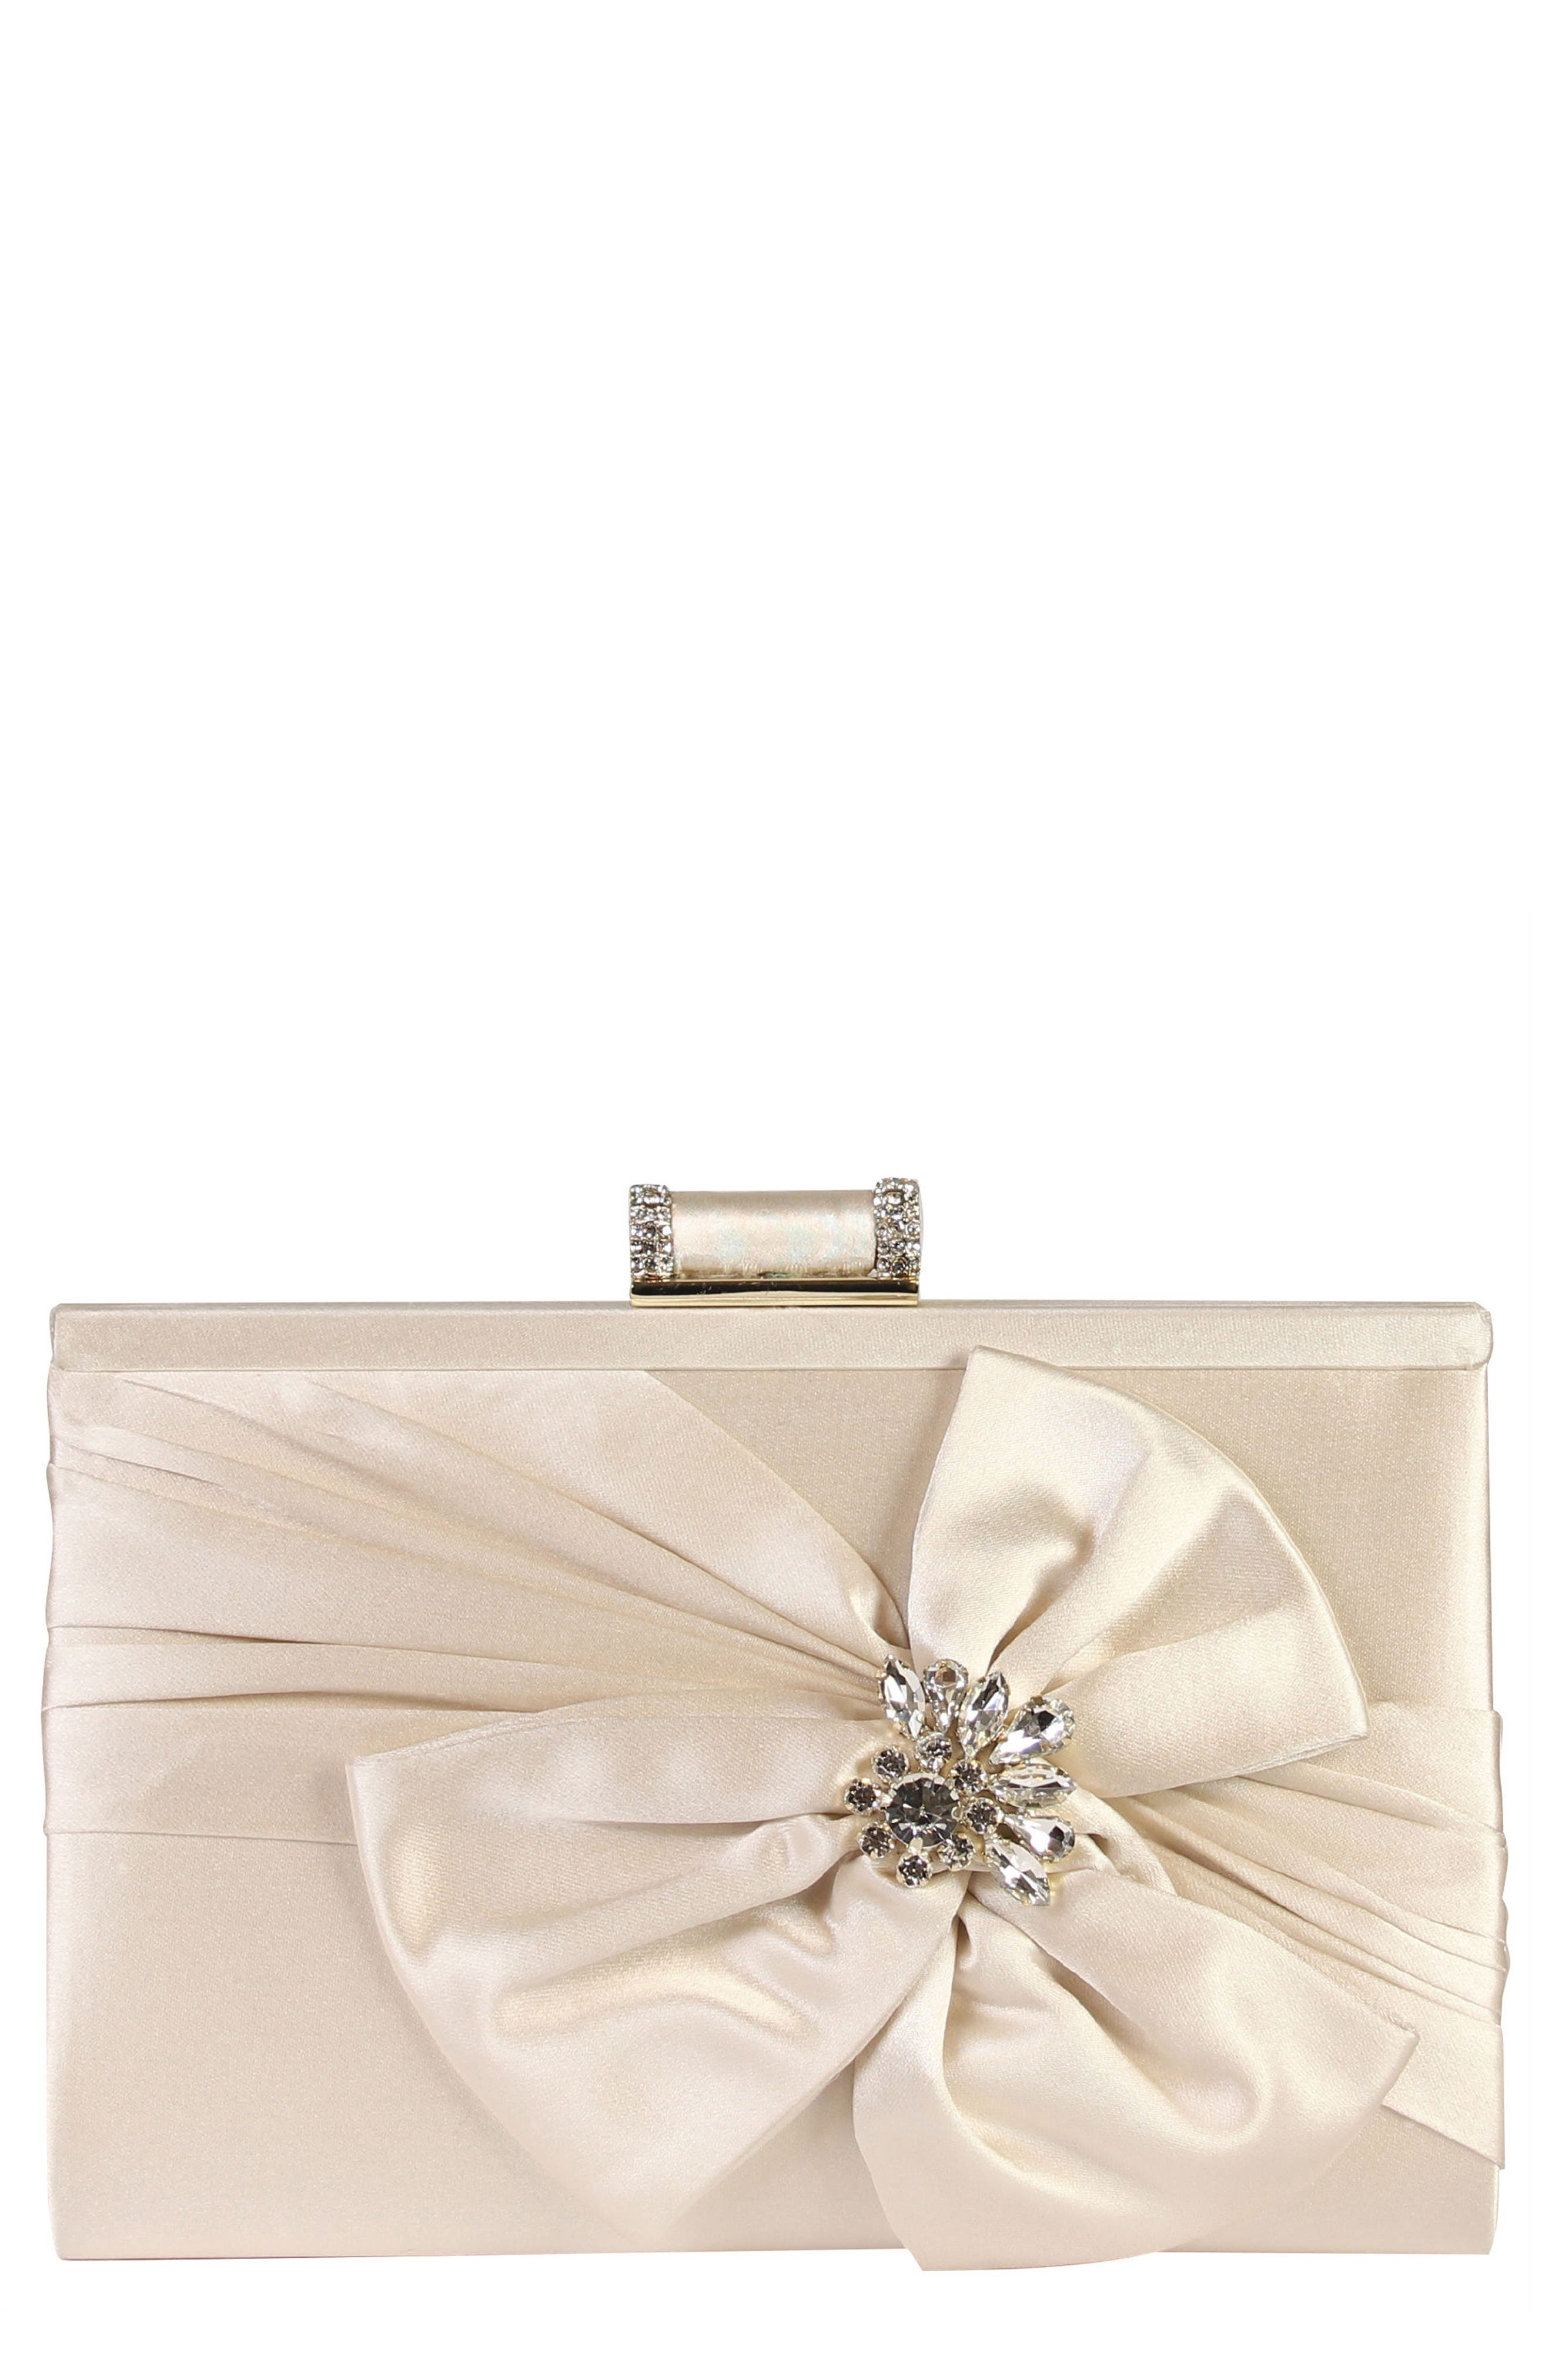 Badgley Mischka Guile Clutch